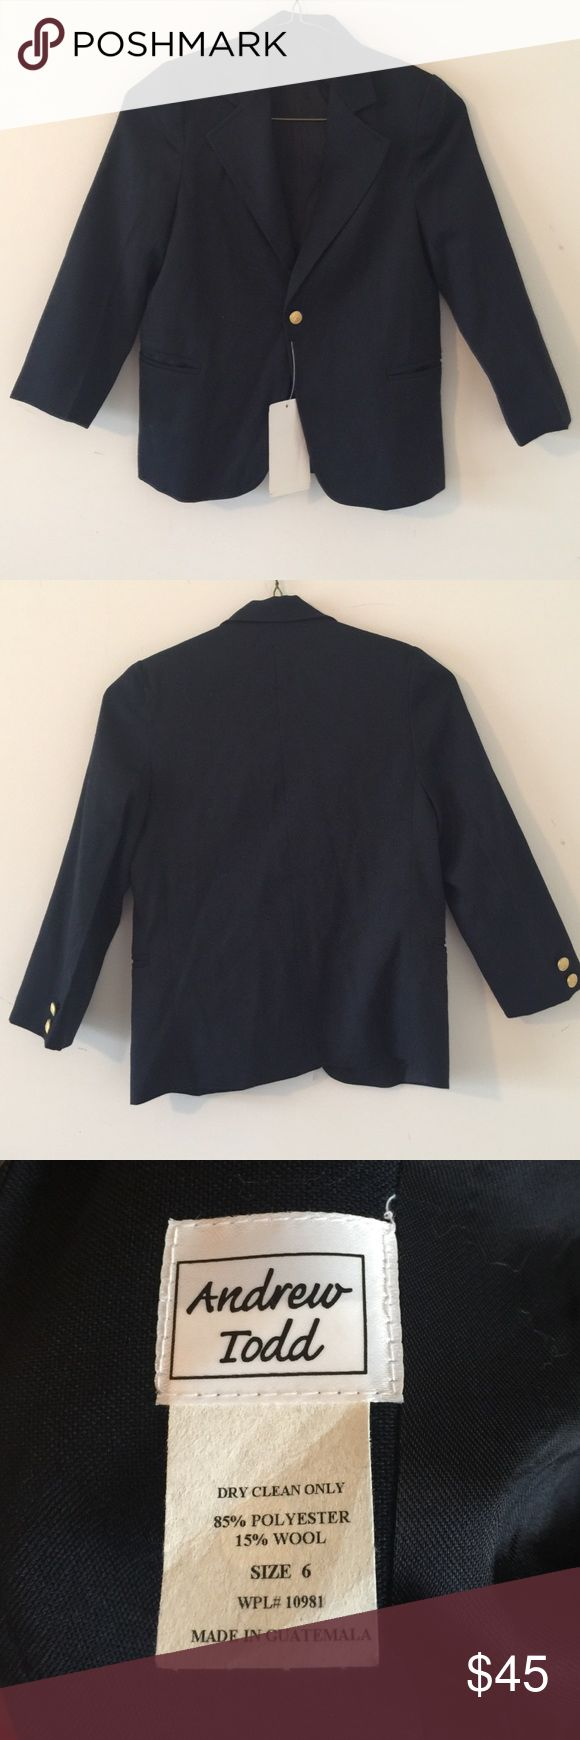 """Andrew Todd Navy Youth Boy Blazer Andrew Todd Navy Youth Boy Blazer. Size 6 & 8. Sleeve Length 16"""", Bust 14.5"""", Shoulder 12"""", Length 20"""".  Dry Clean Only. Andrew Todd Jackets & Coats Blazers"""